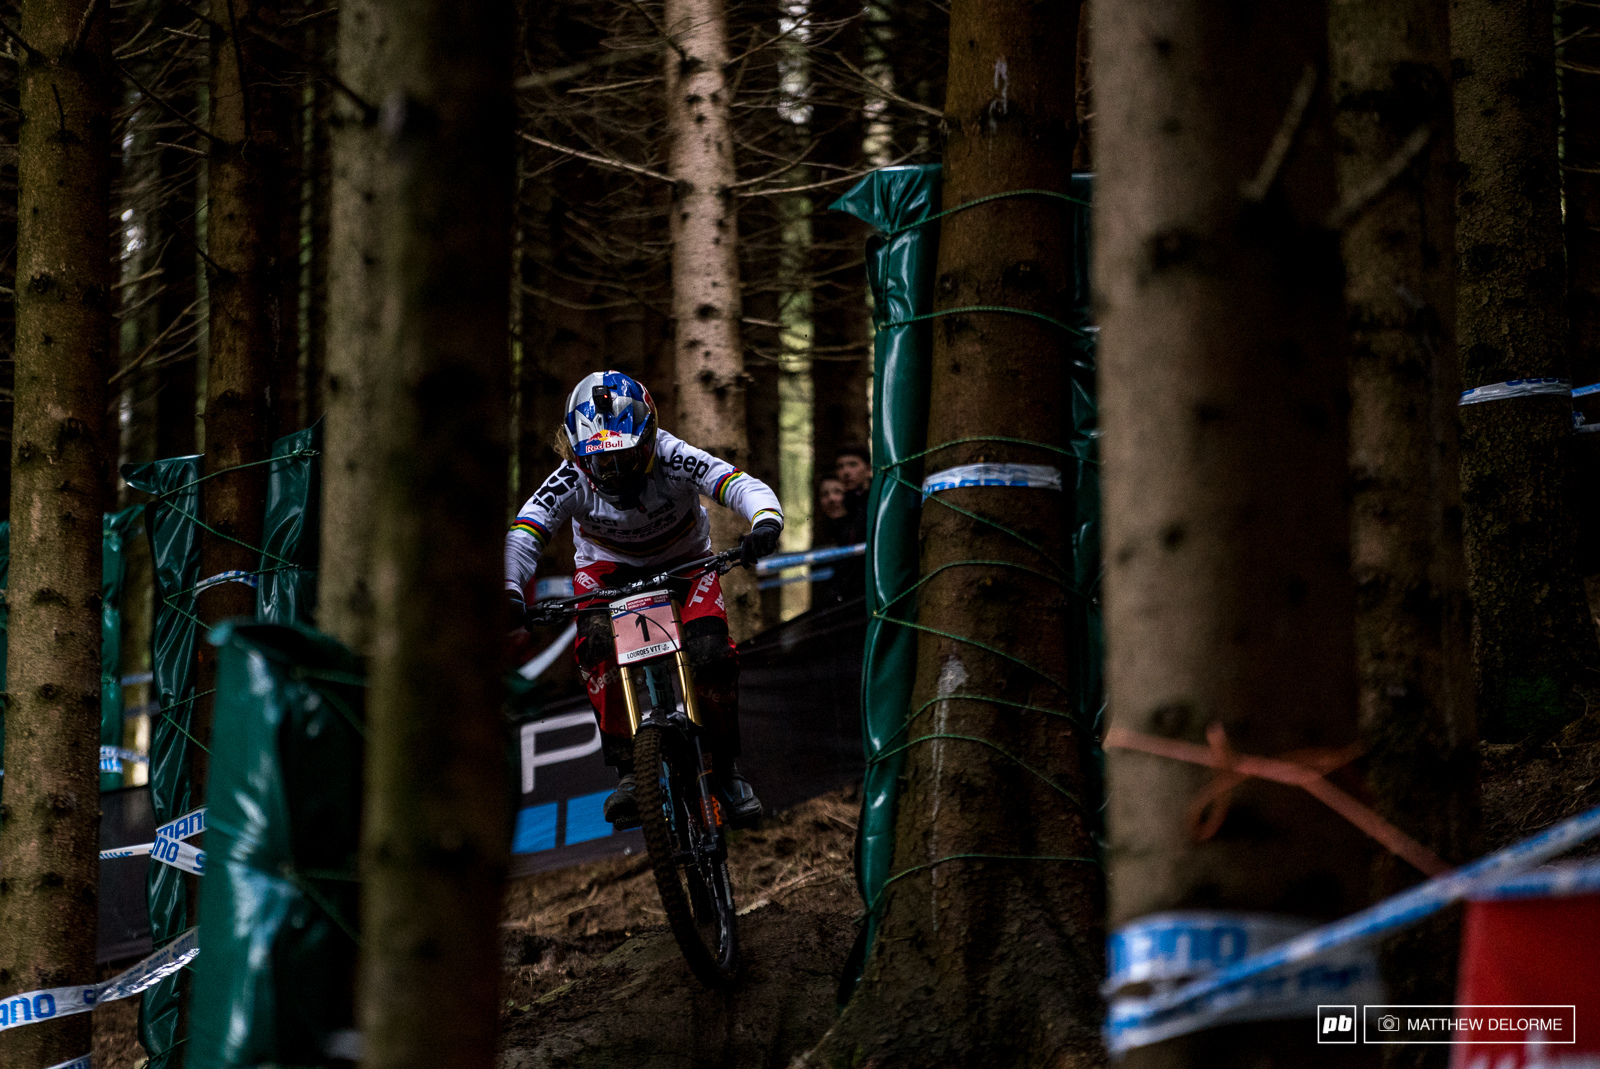 Rachel Atherton running to a second place qualifying today. The champ is no stranger to sloppy conditions like these look for her to lay down the gauntlet tomorrow.